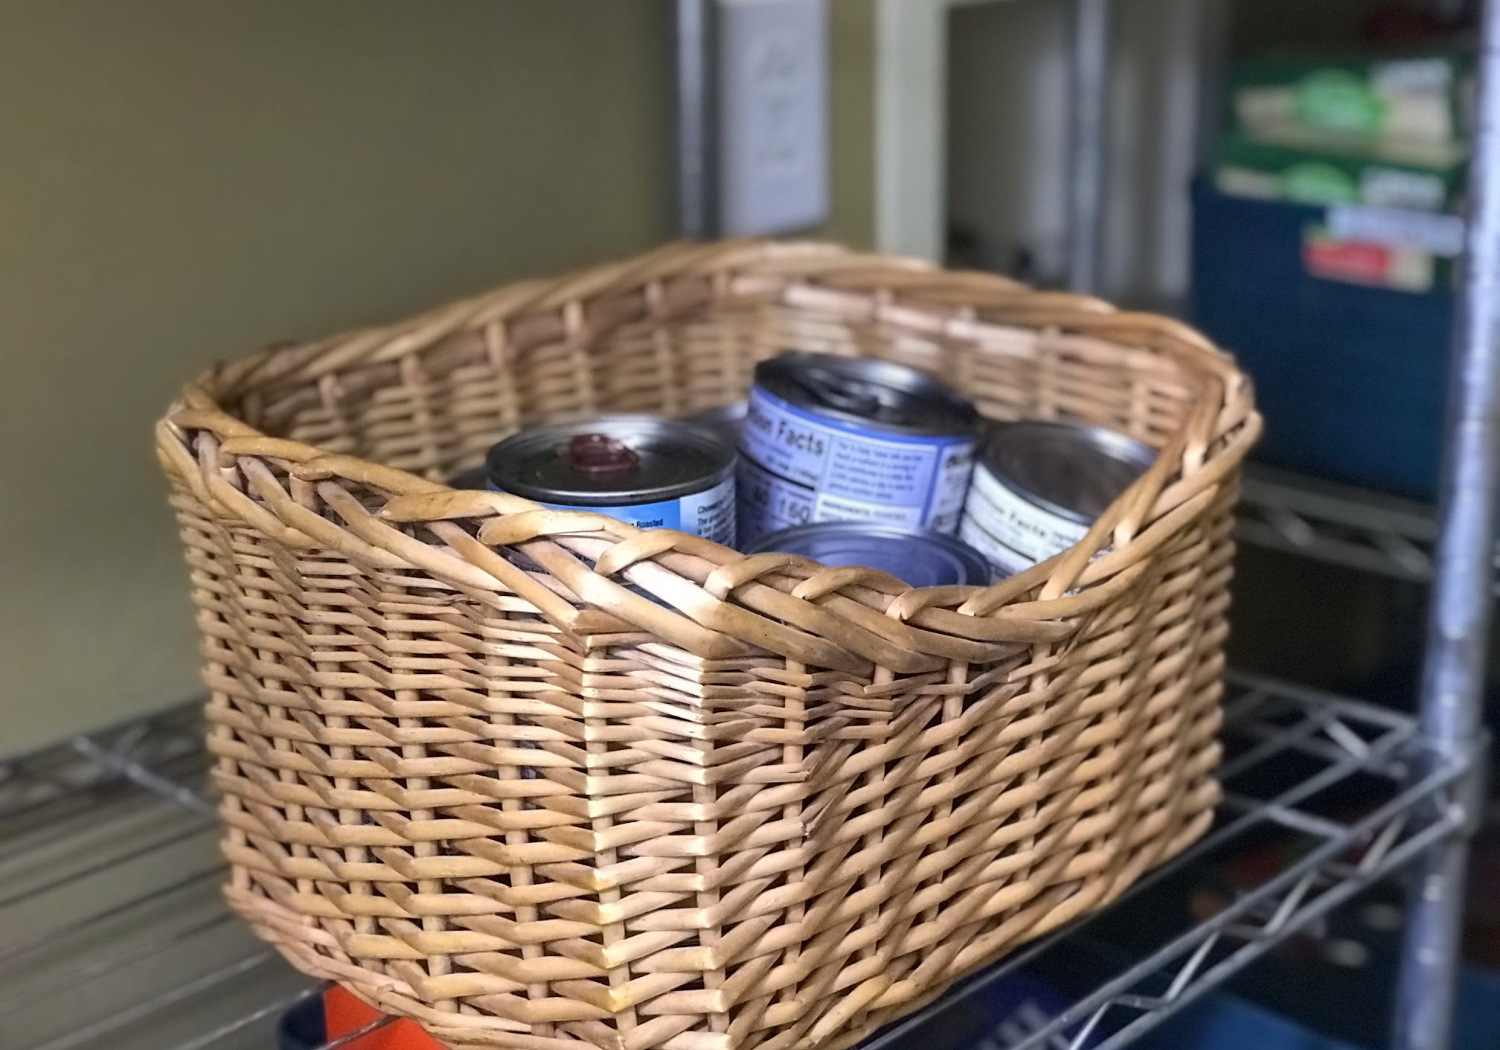 baskets with soup cans on a pantry shelf